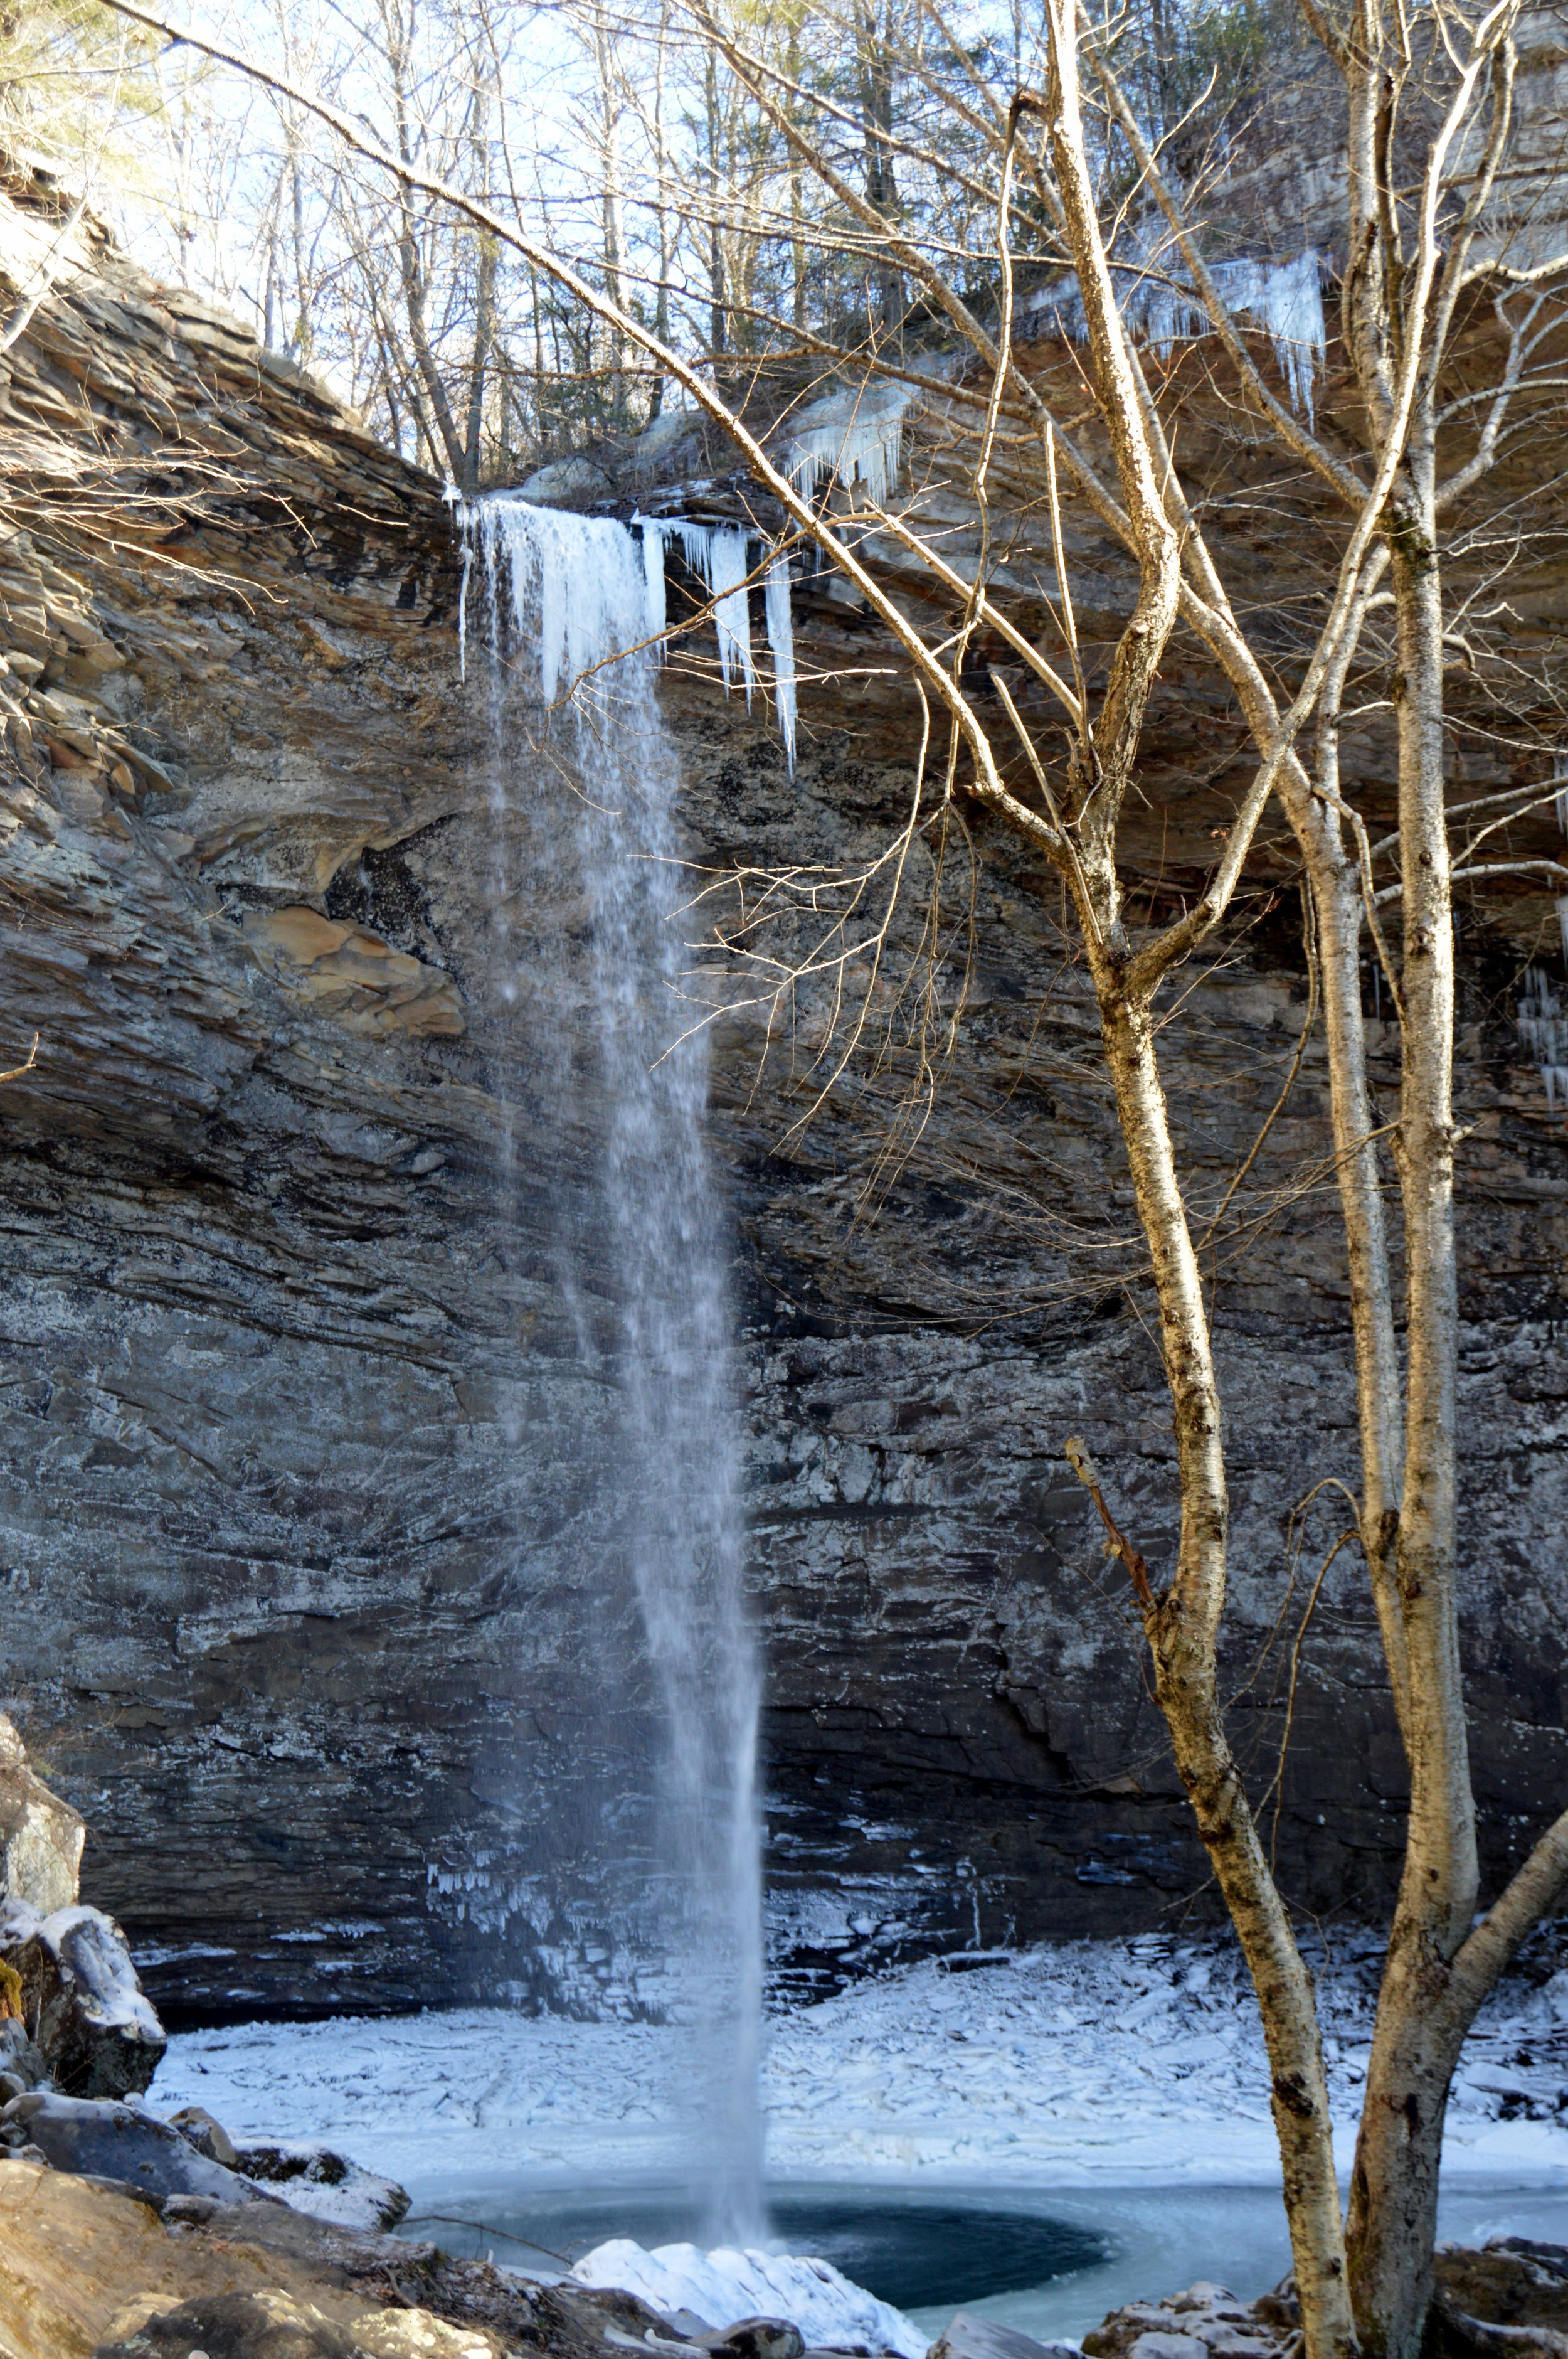 Ozone Falls in Cumberland County is just a few hundred yards down a rocky path from the parking lot on U.S. 70.